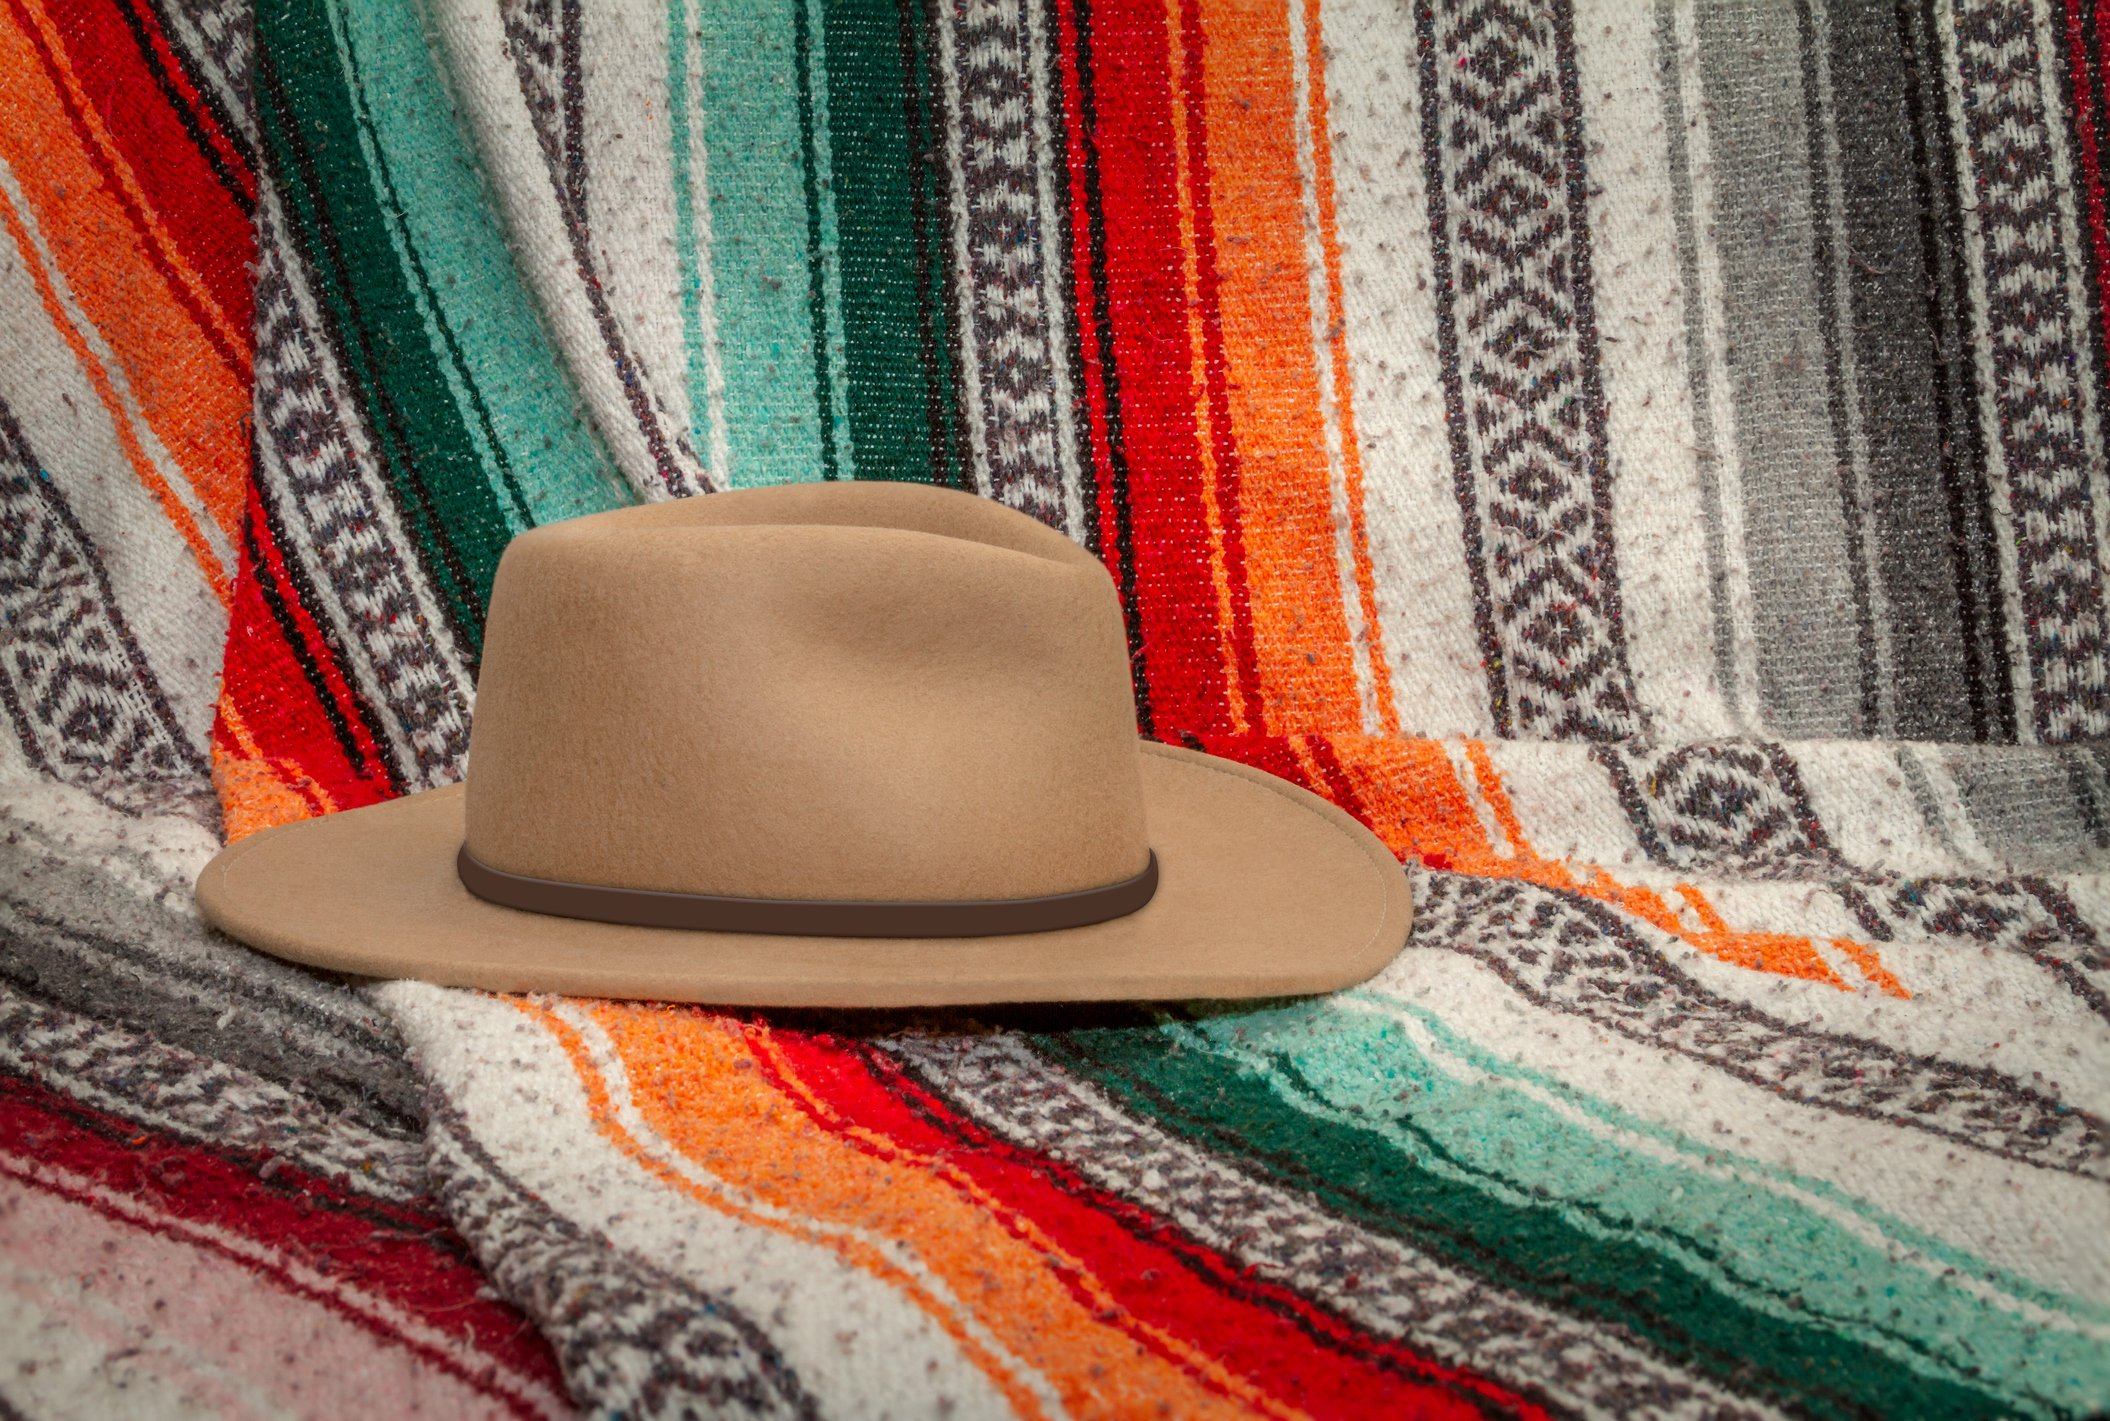 Mexican blanket with a brown hat